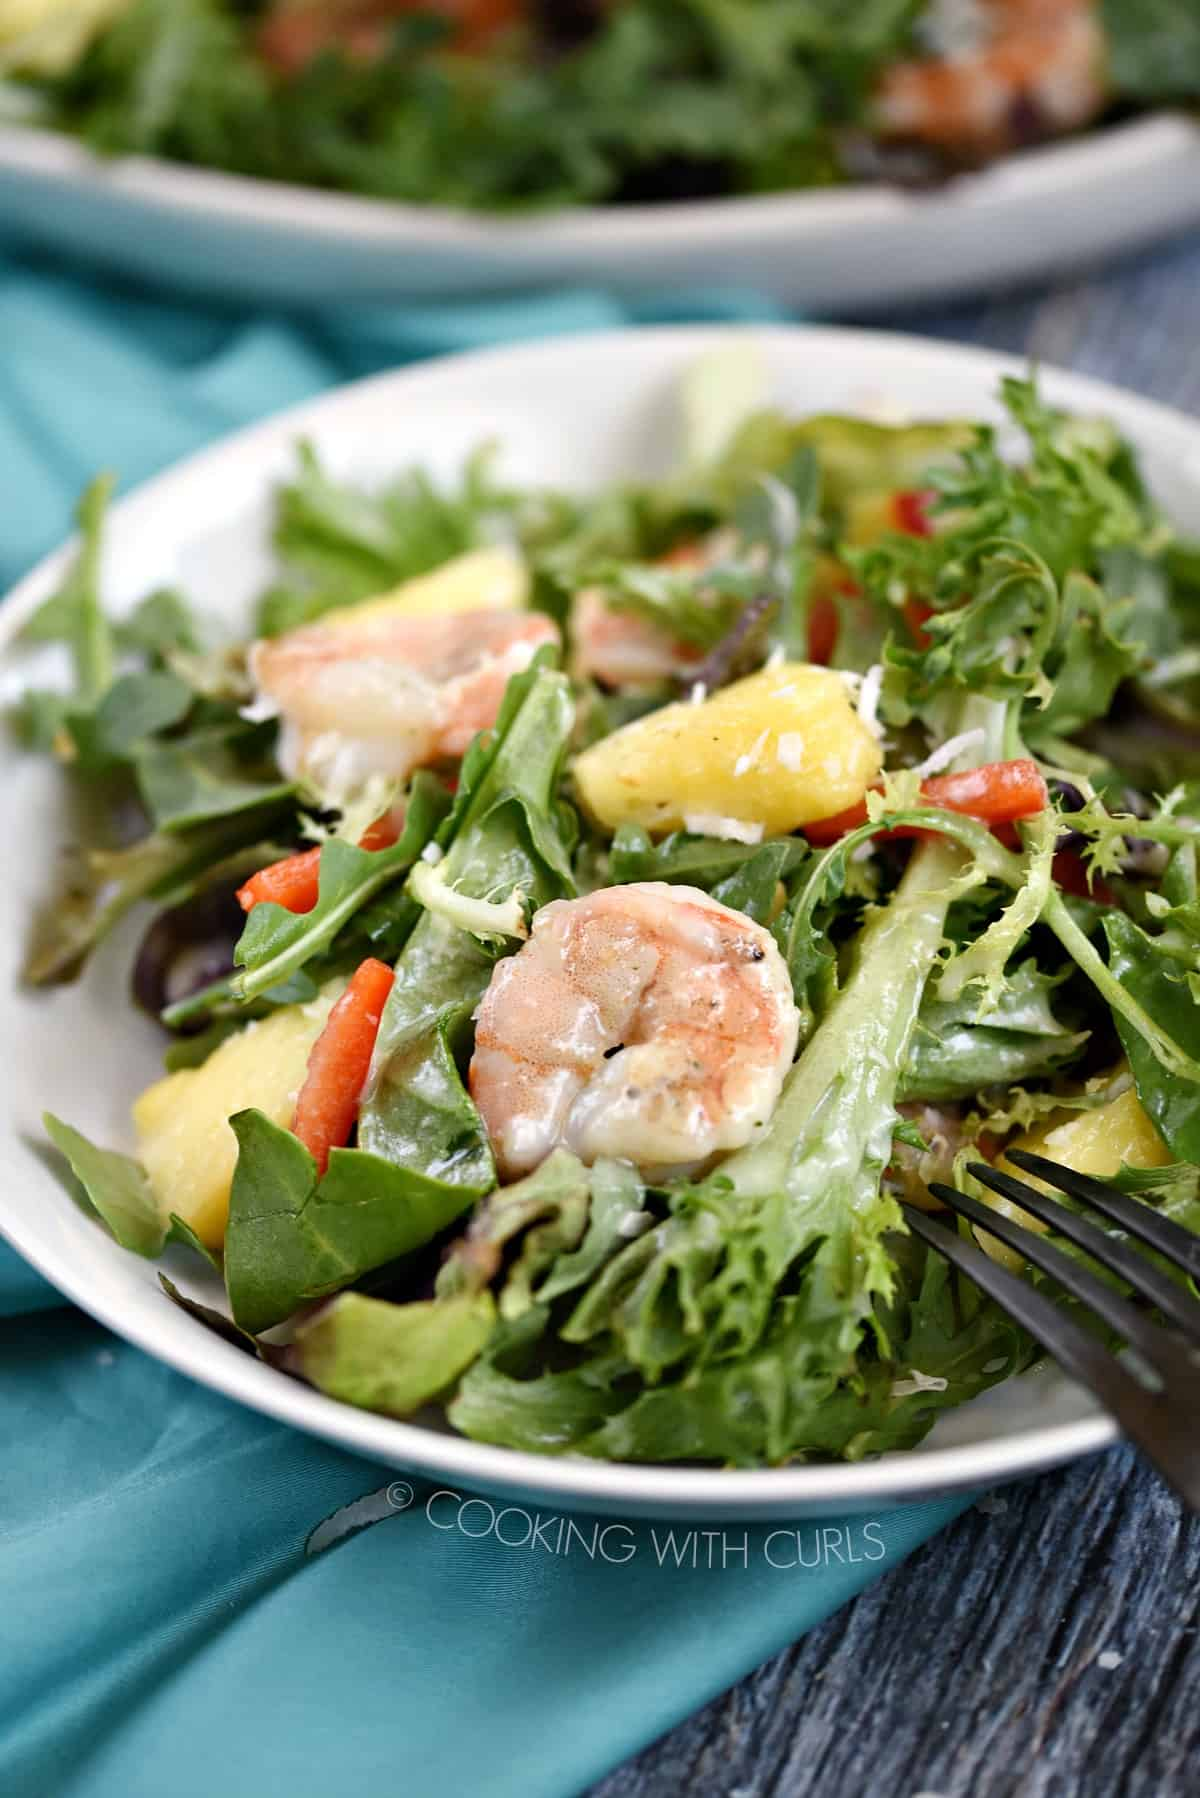 A close up image of a white bowl filled with salad greens, pineapple chunks, pepper strips and grilled shrimp drizzled with pina colada vinaigrette.